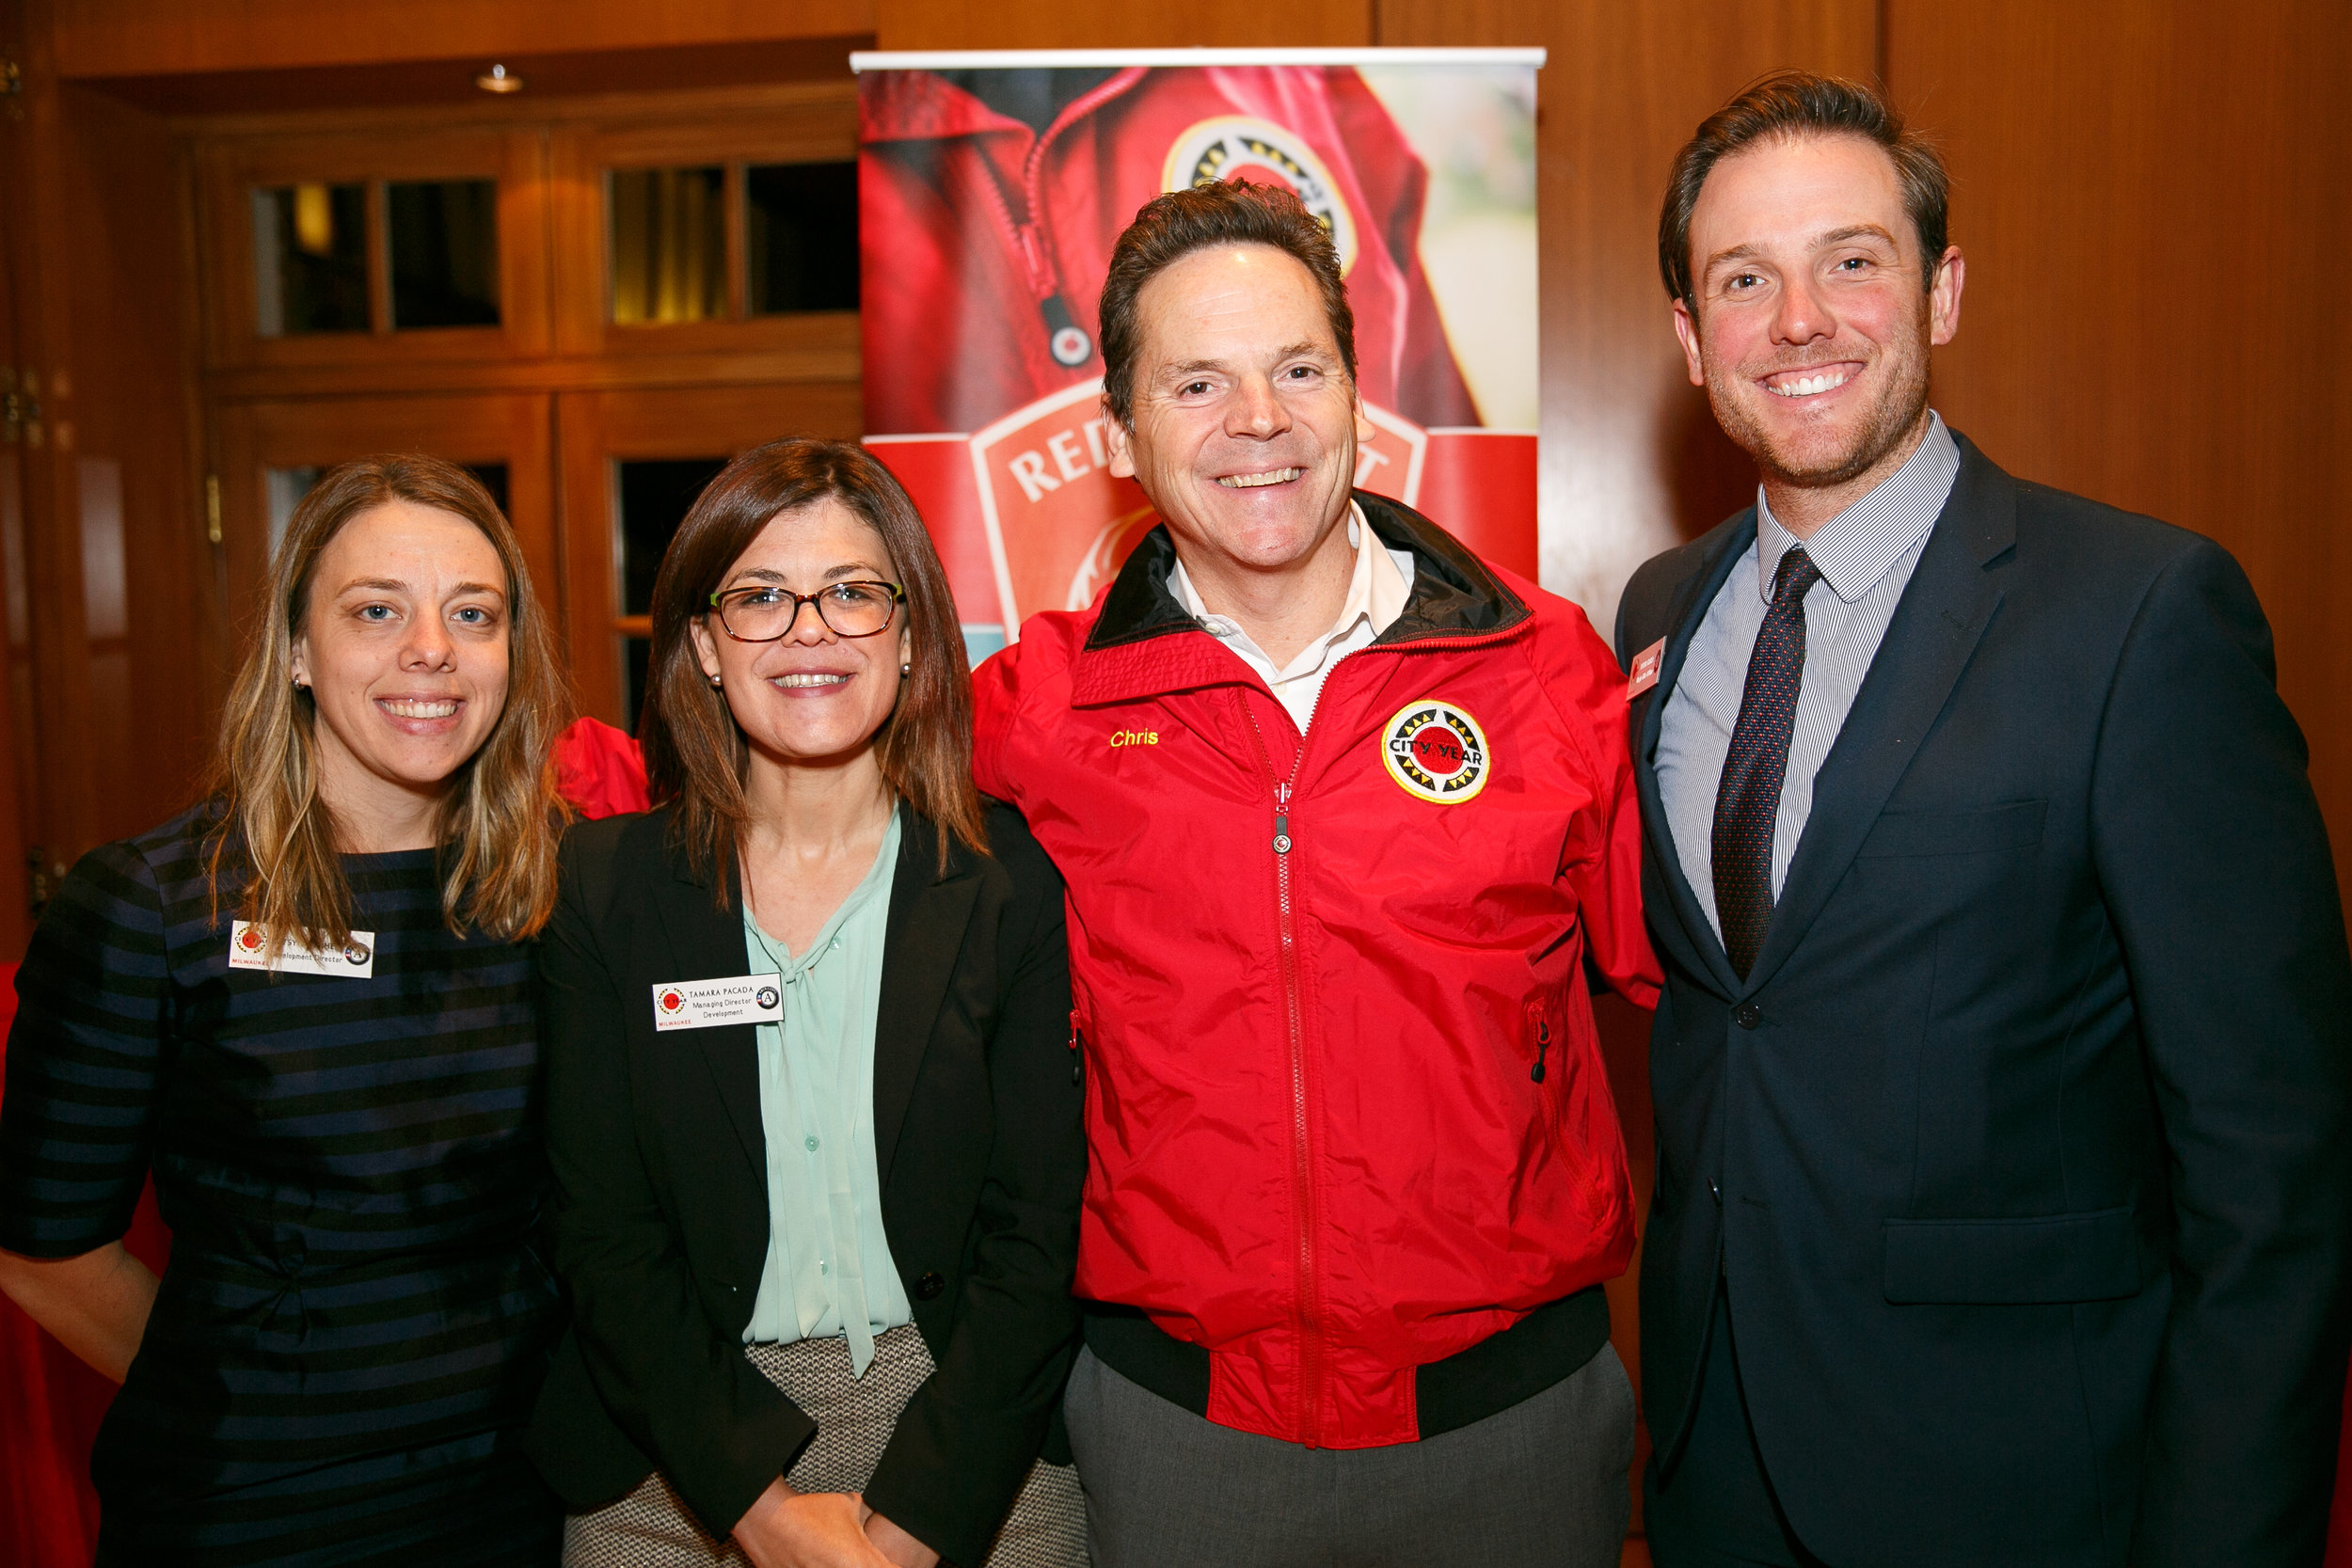 City Year Milwaukee Development Director, Betsy Mitchell; City Year Milwaukee Senior Director of Development, Tamara Pacada; City Year Milwaukee Board Co-Chair, Chris Didier; and City Year Milwaukee Major Gifts Officer, Tyler Hart at the RJS Jacket Dedication Reception